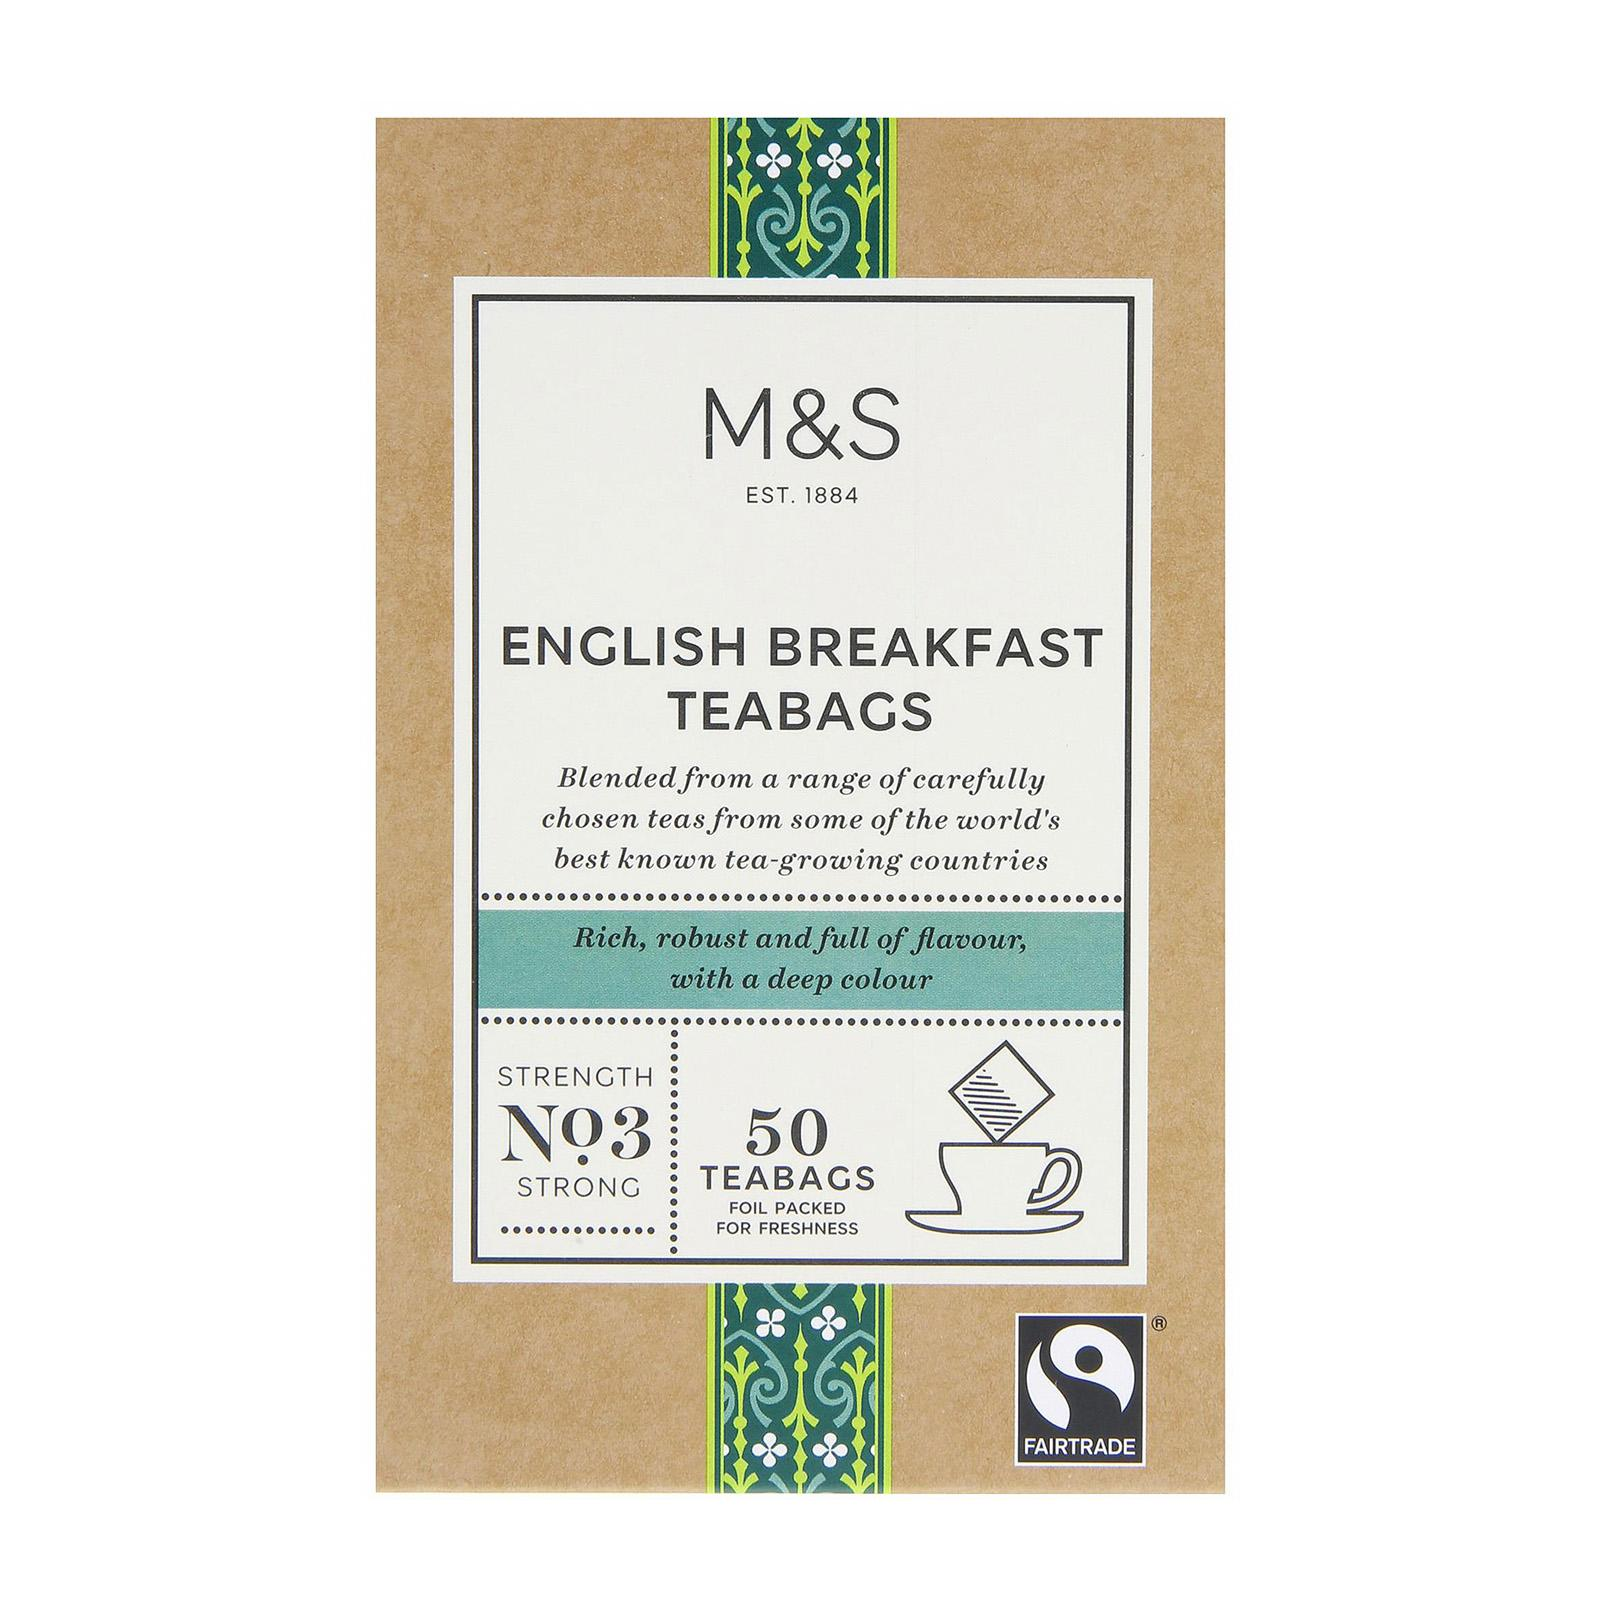 Marks & Spencer Fairtrade English Breakfast Teabags